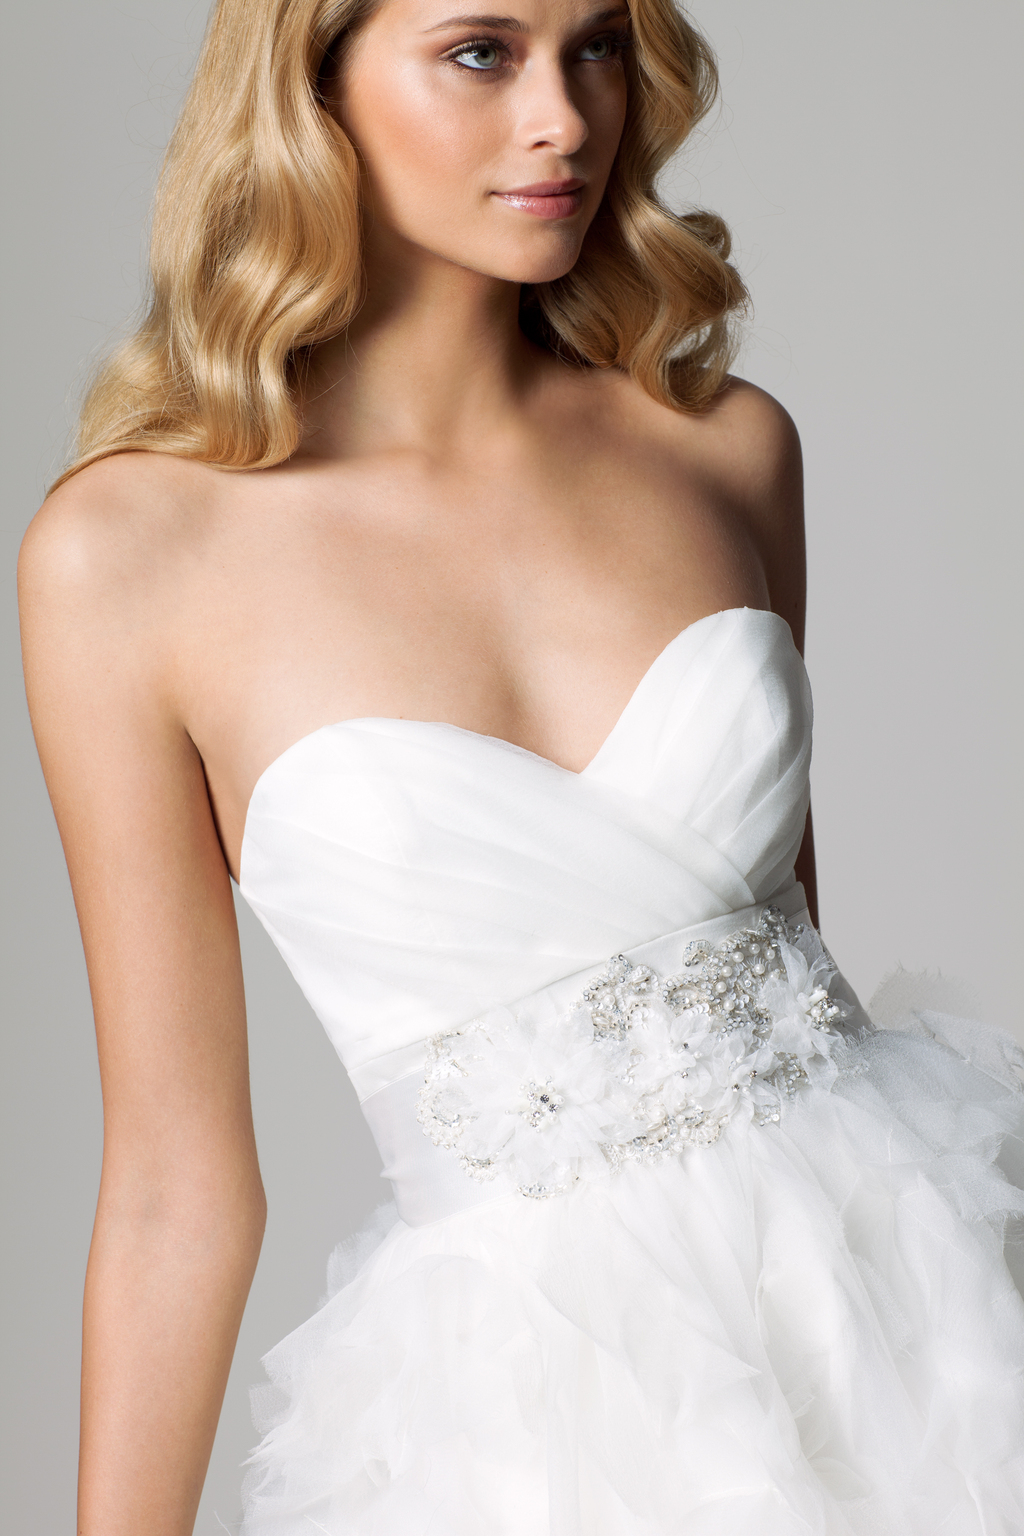 Fall-2012-wedding-dress-wtoo-bridal-gown-by-watters-9-detail.full